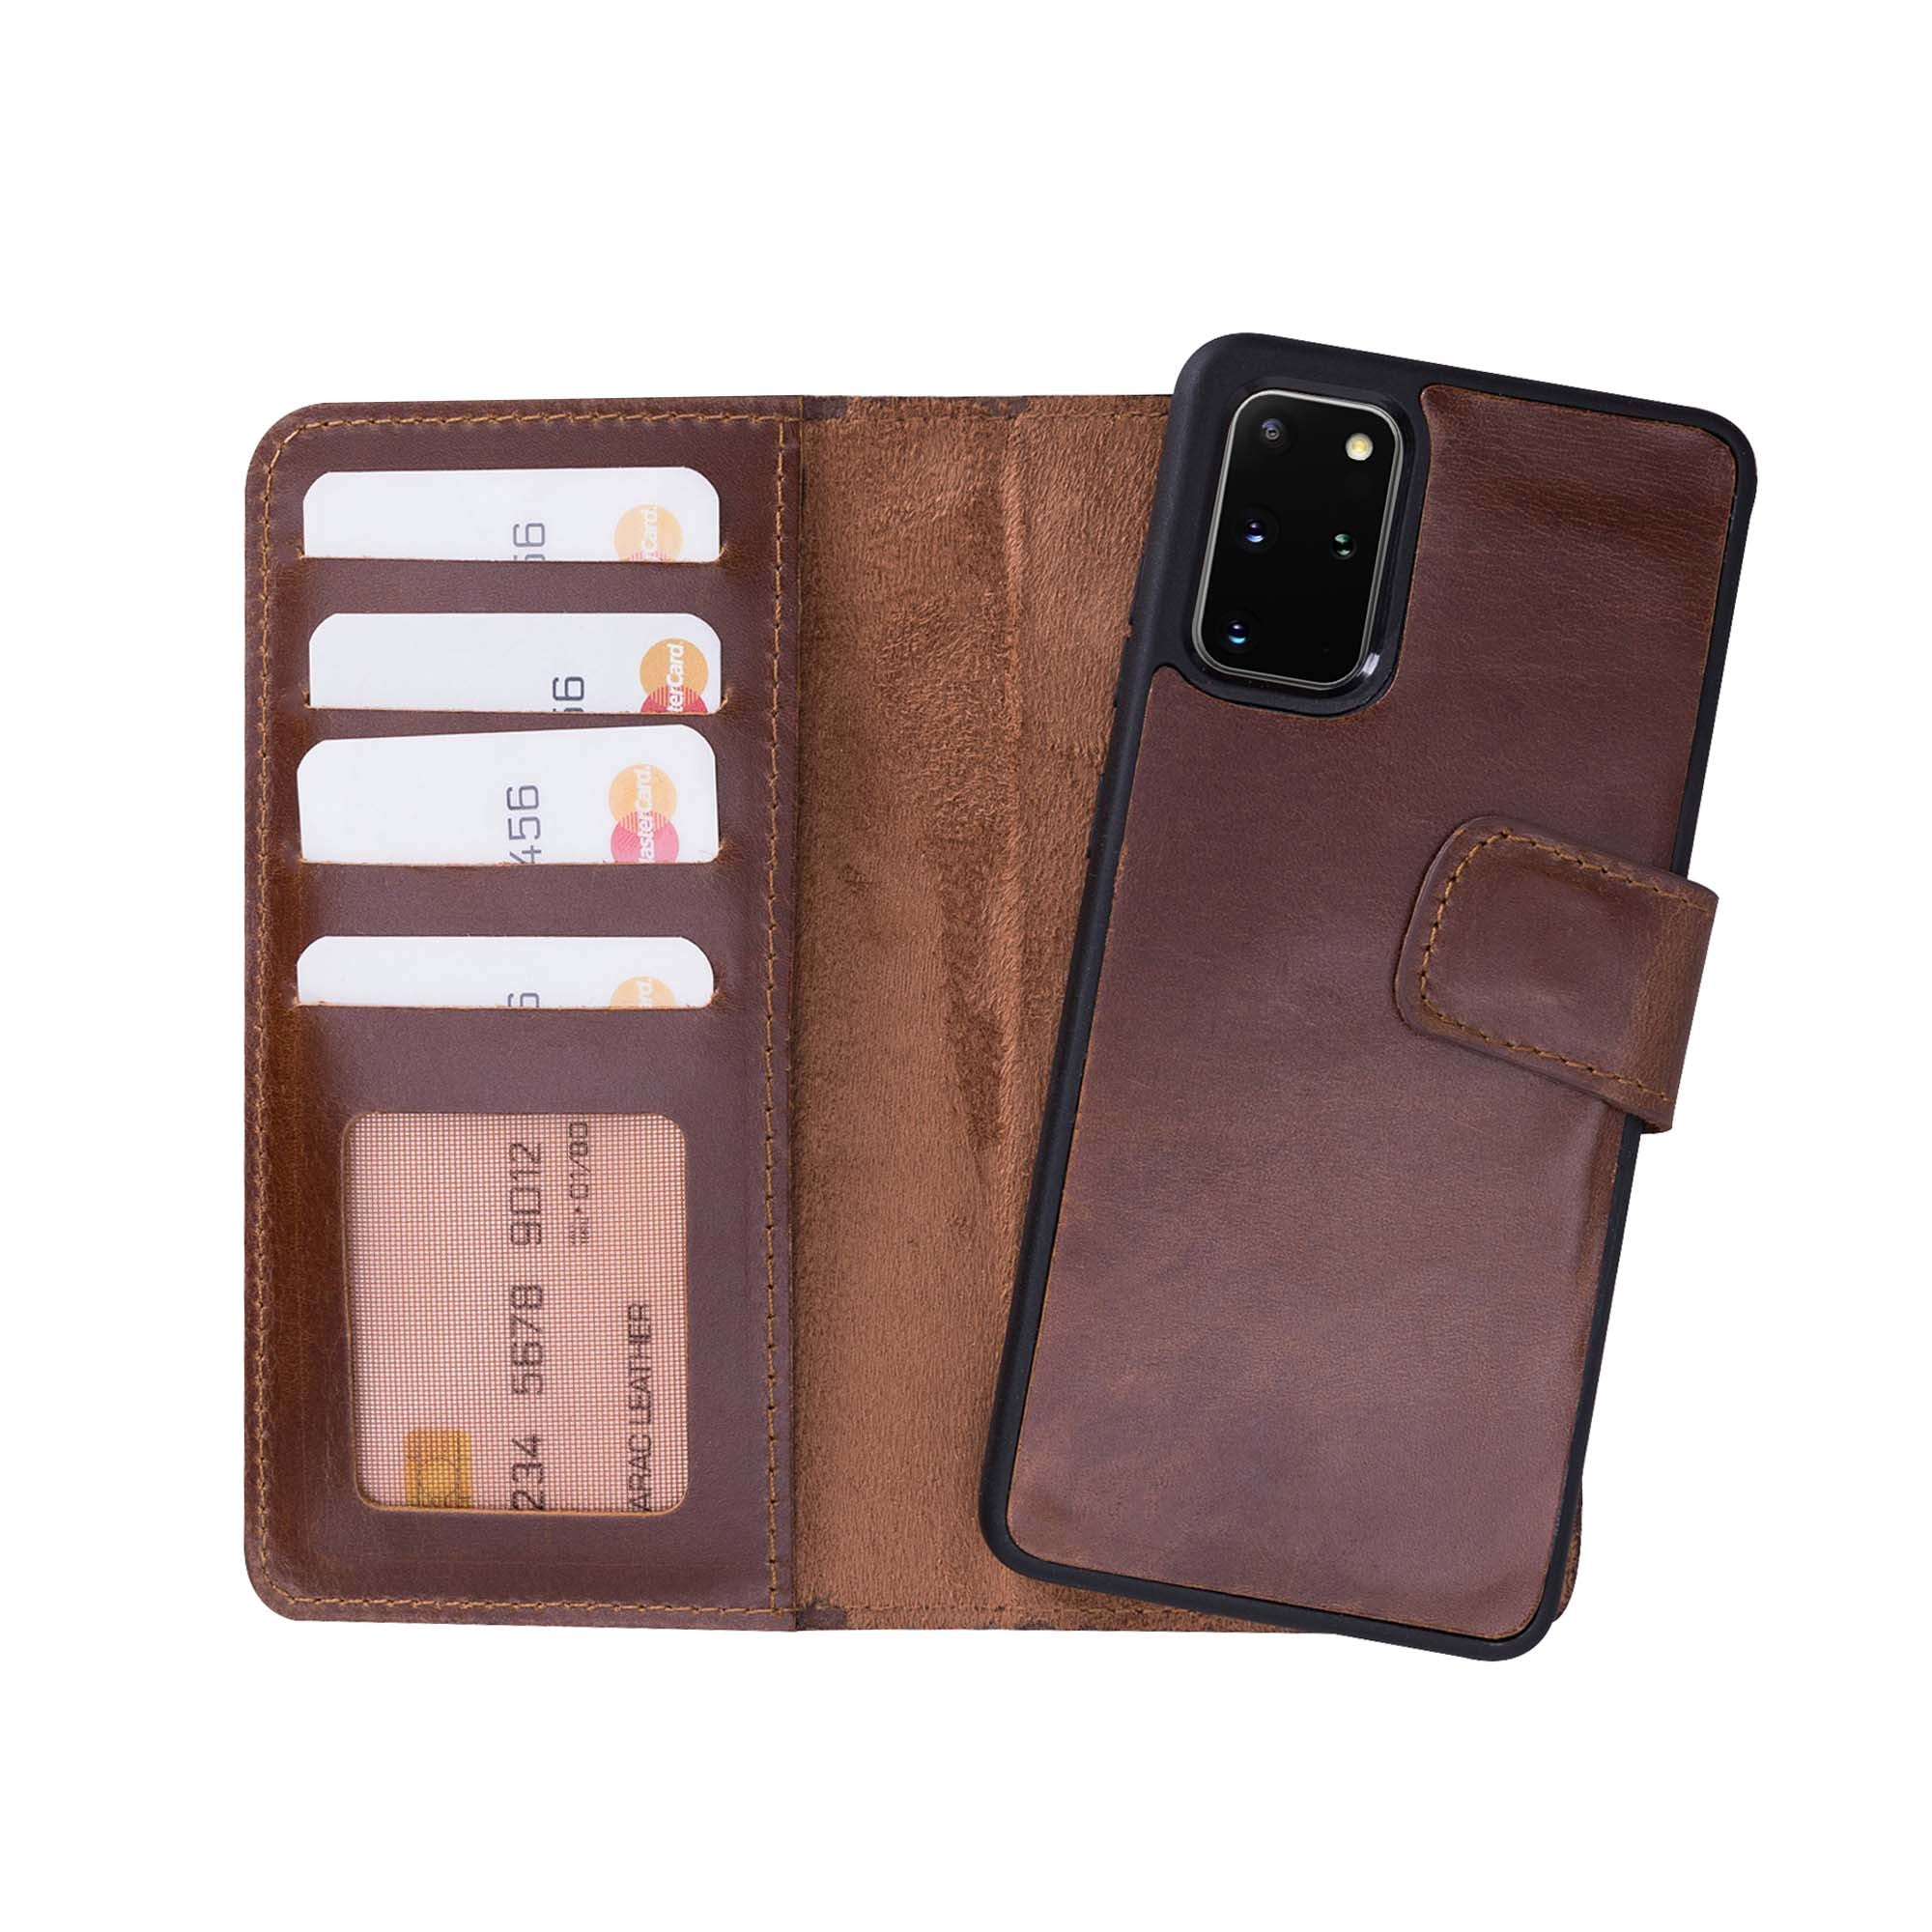 "Liluri Magnetic Detachable Leather Wallet Case for Samsung Galaxy S20 Plus (6.7"") - BROWN"